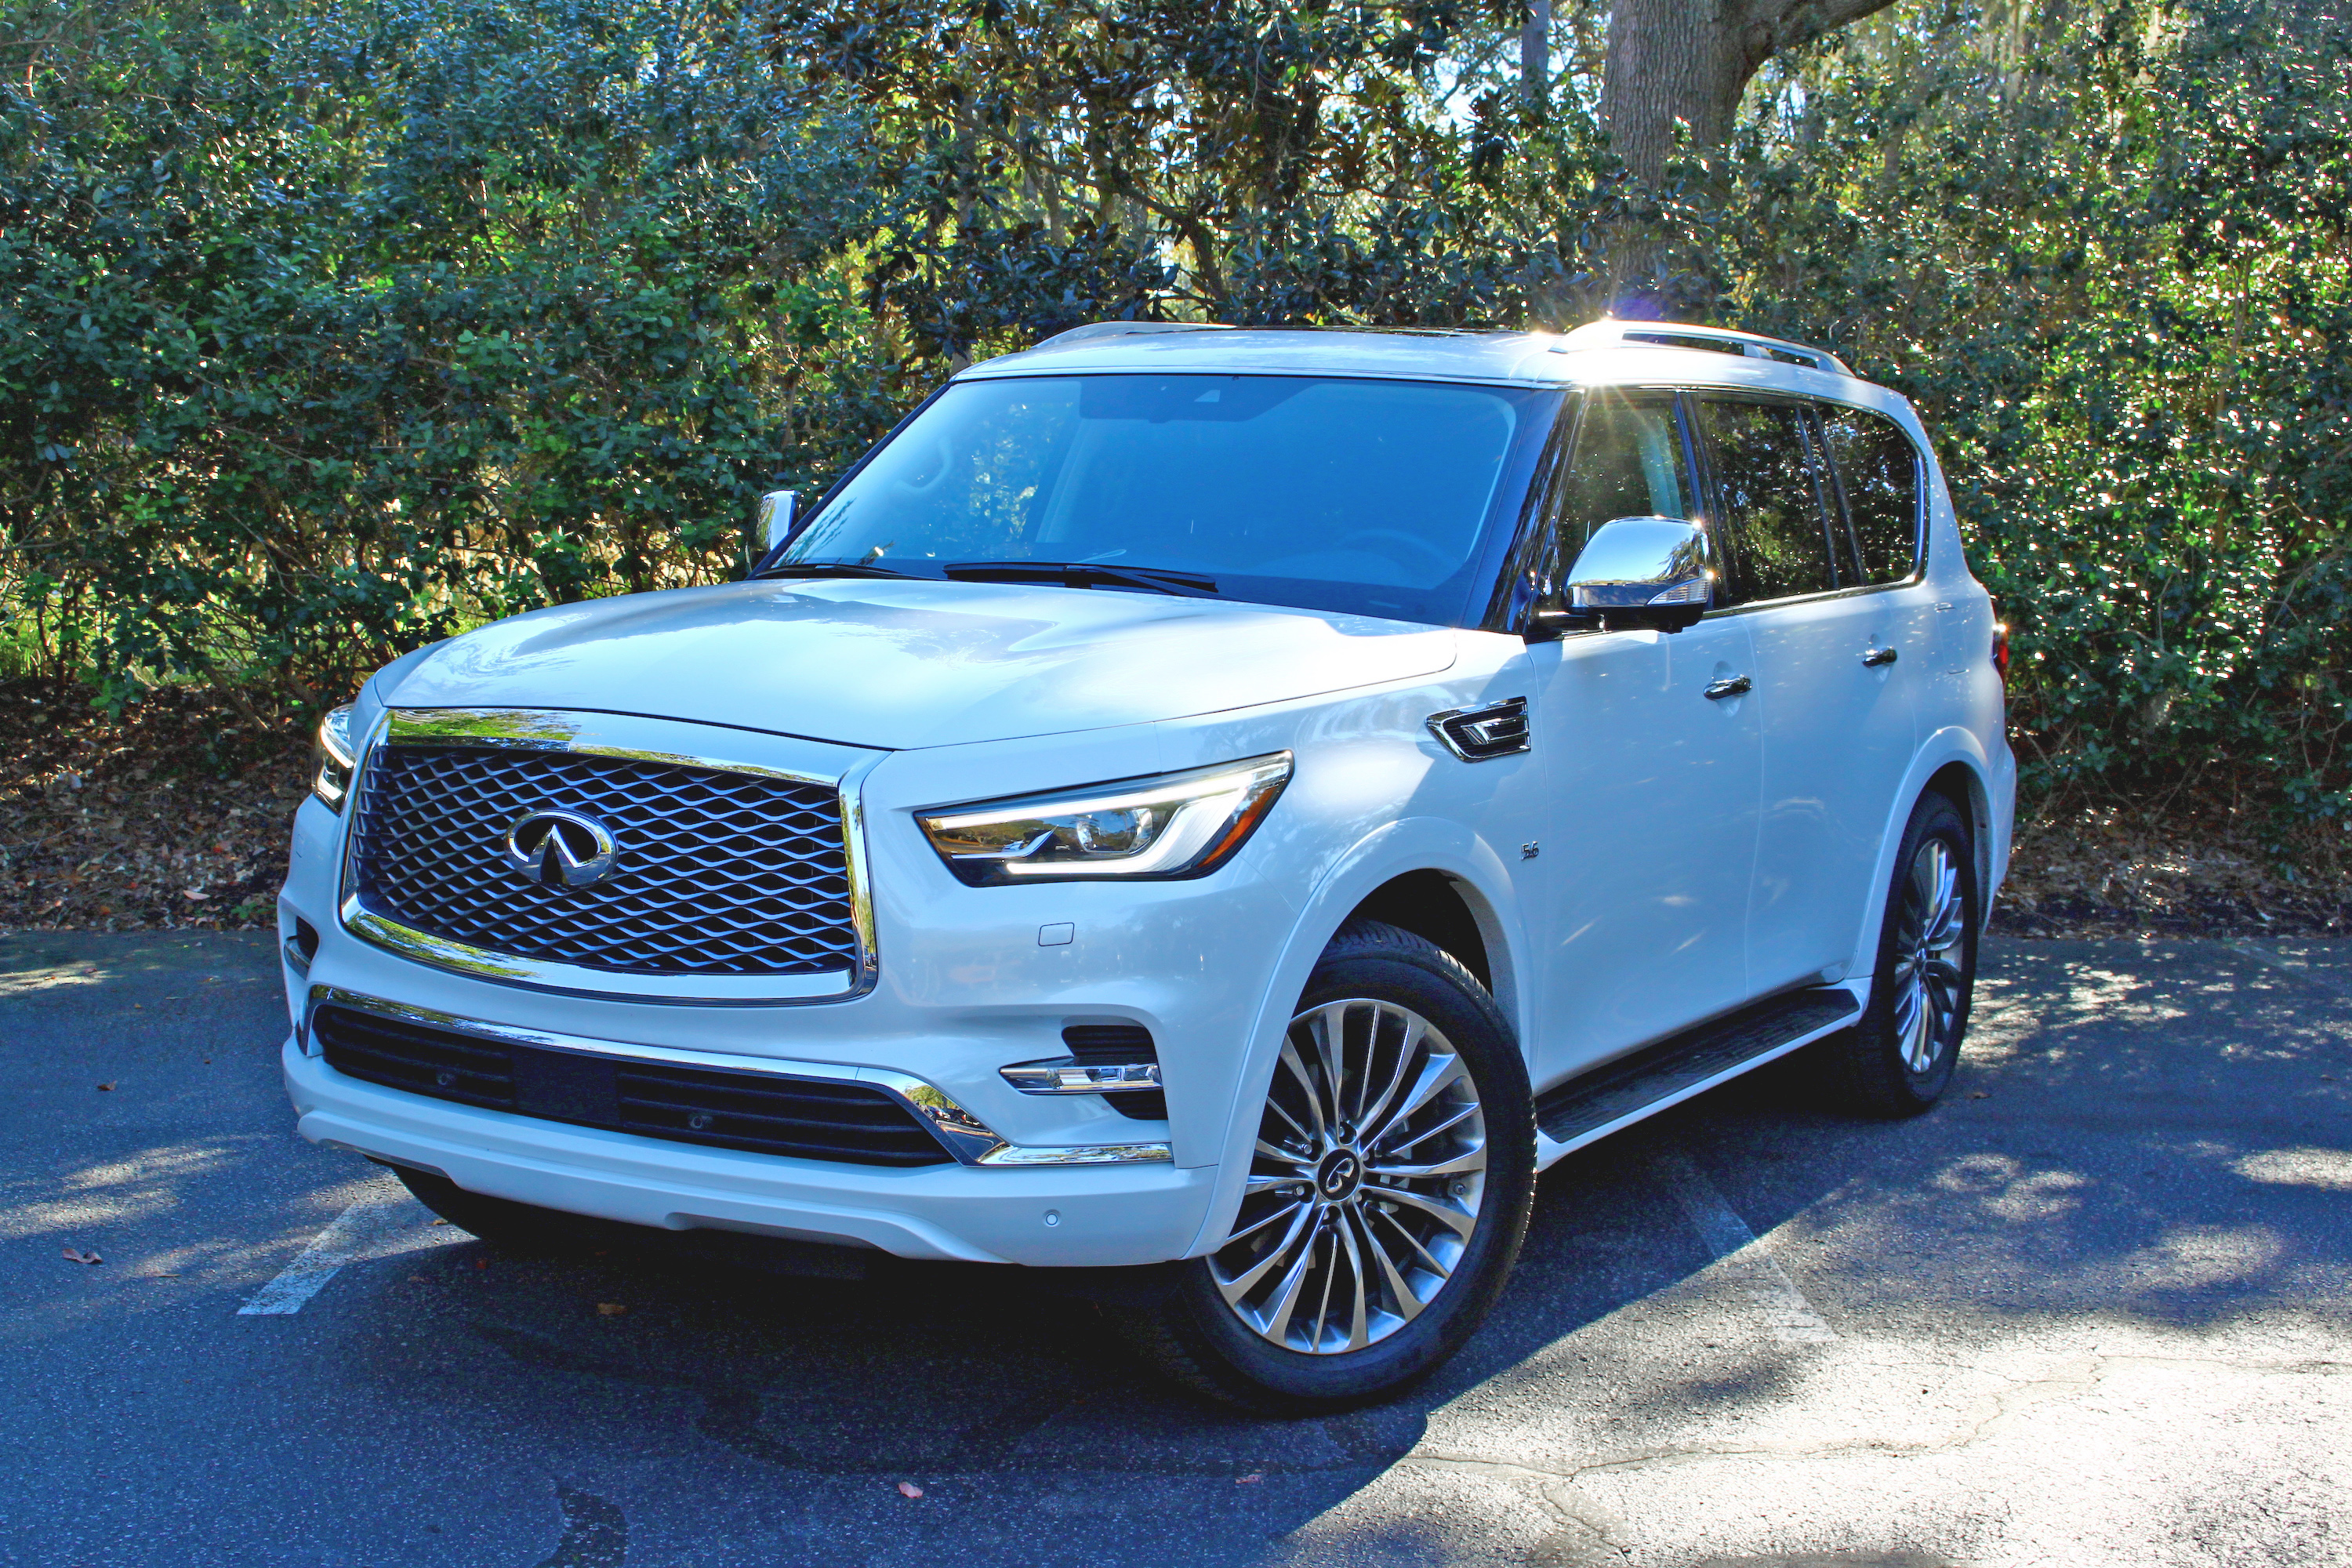 Facts About Cars >> 2018 Infiniti QX80 Review - AutoGuide.com